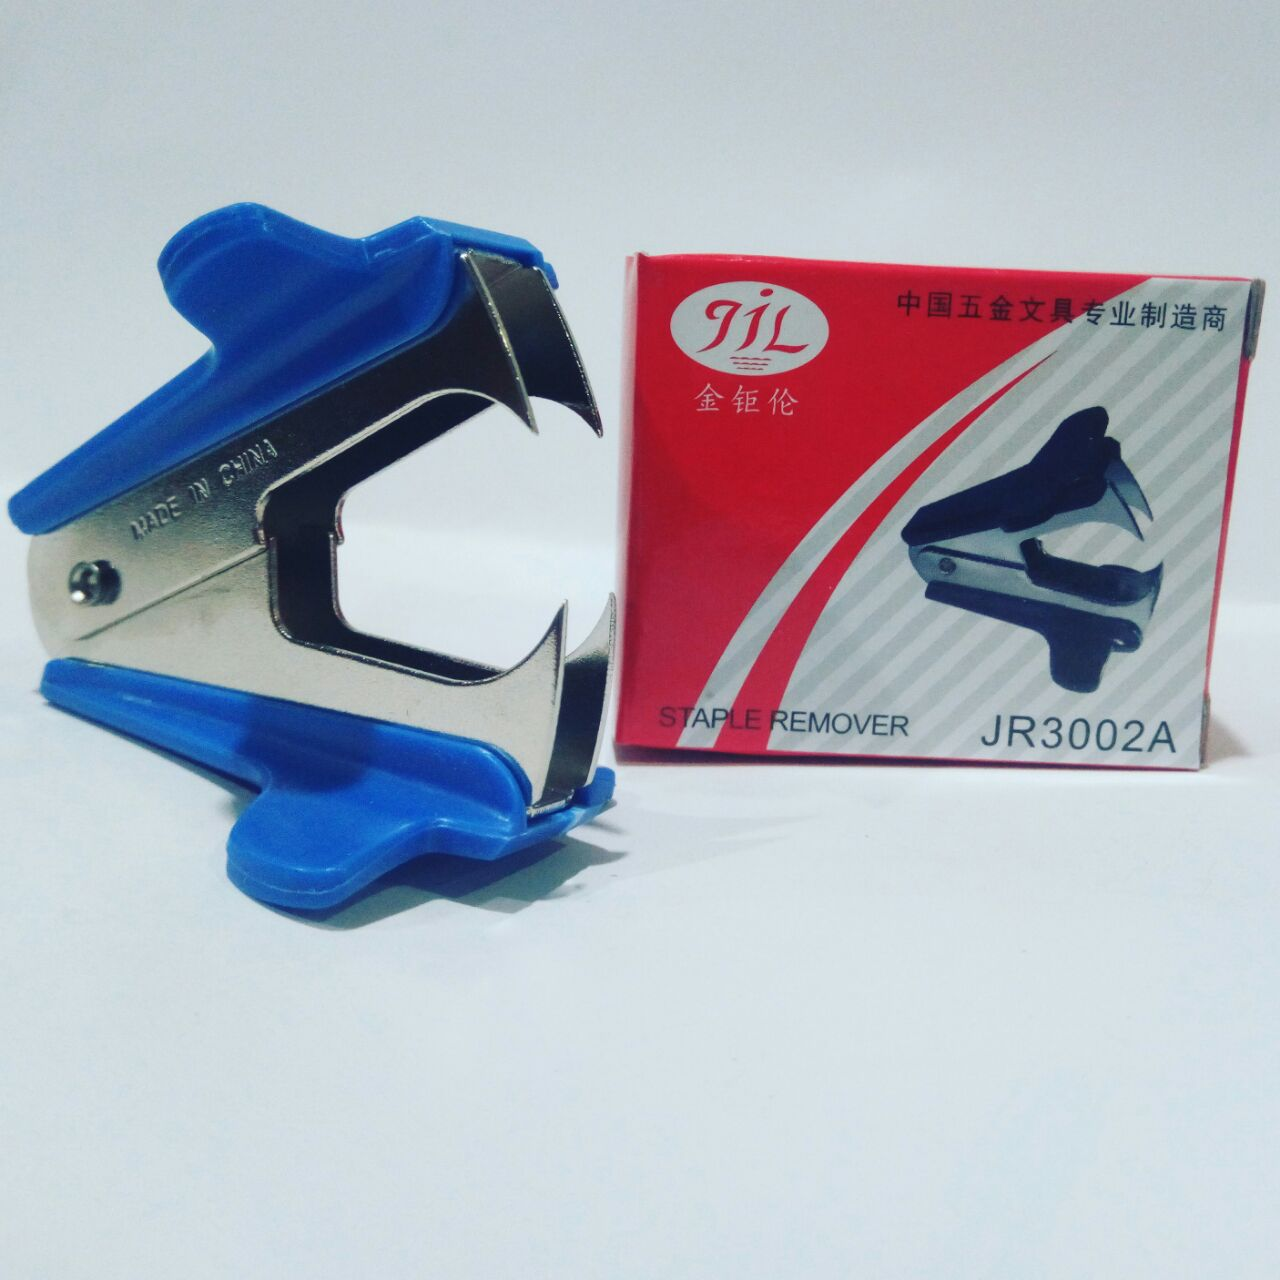 Stapler Remover China - M.M STATIONERS